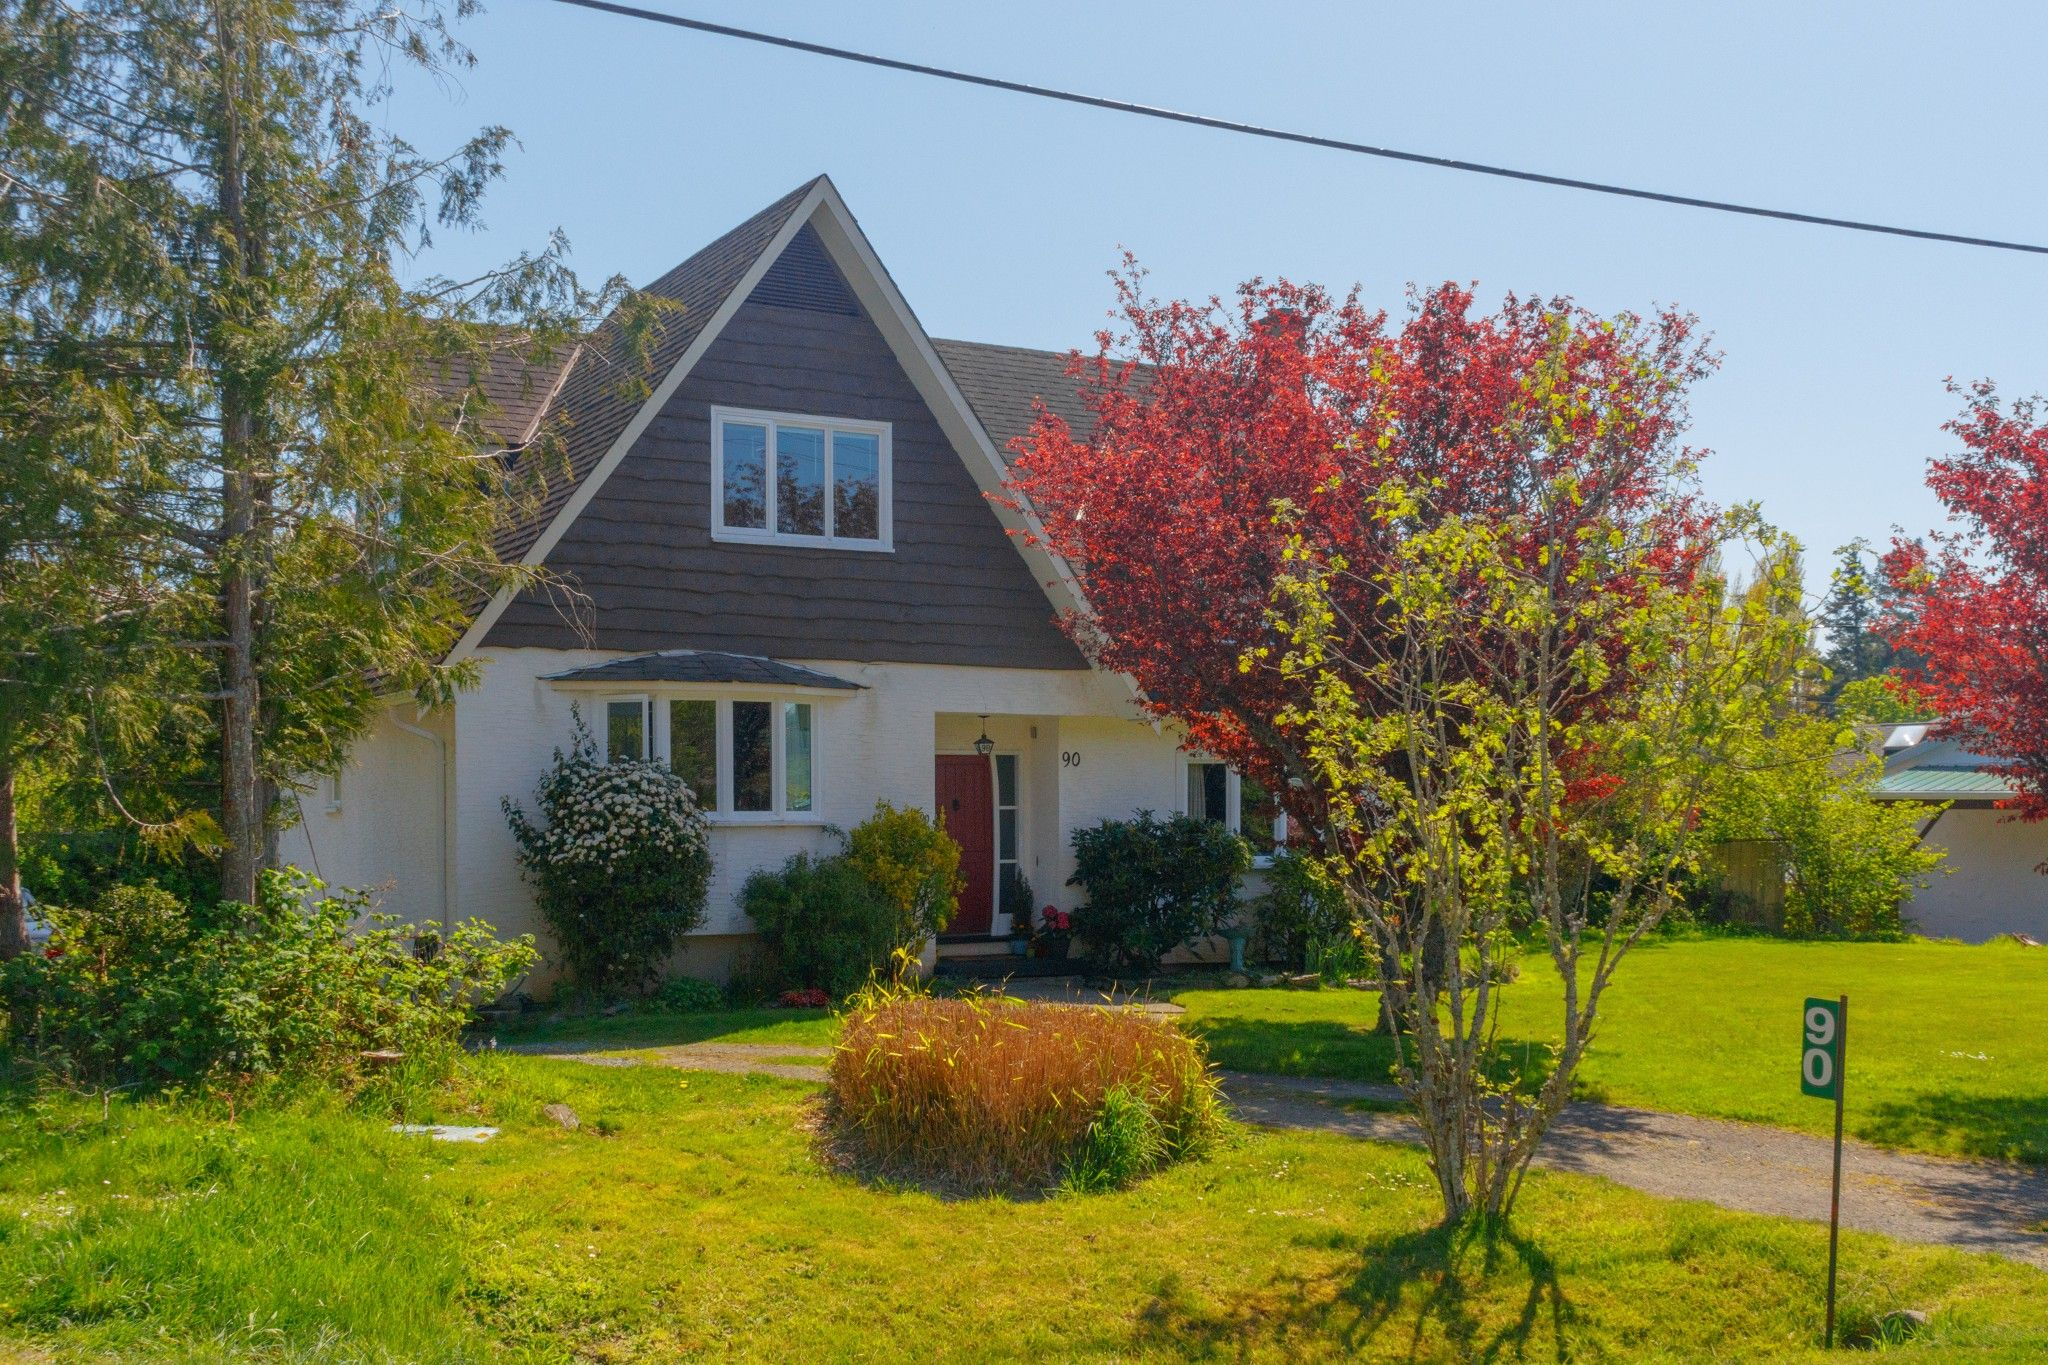 Main Photo: 90 Bradene Road in Victoria: House for sale (Metchosin)